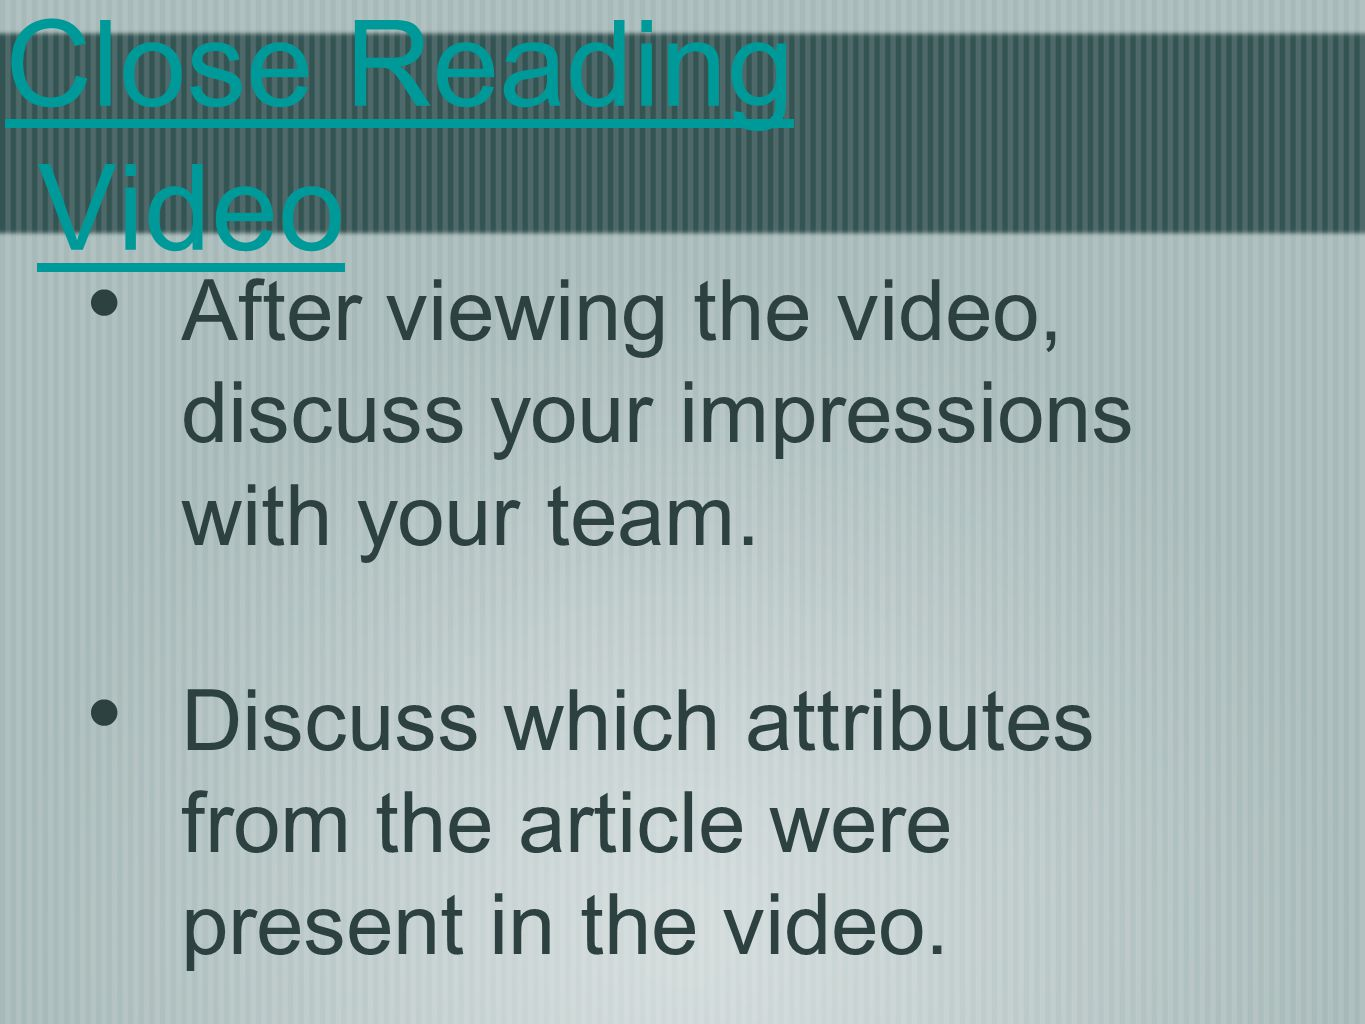 Close Reading Video After viewing the video, discuss your impressions with your team.